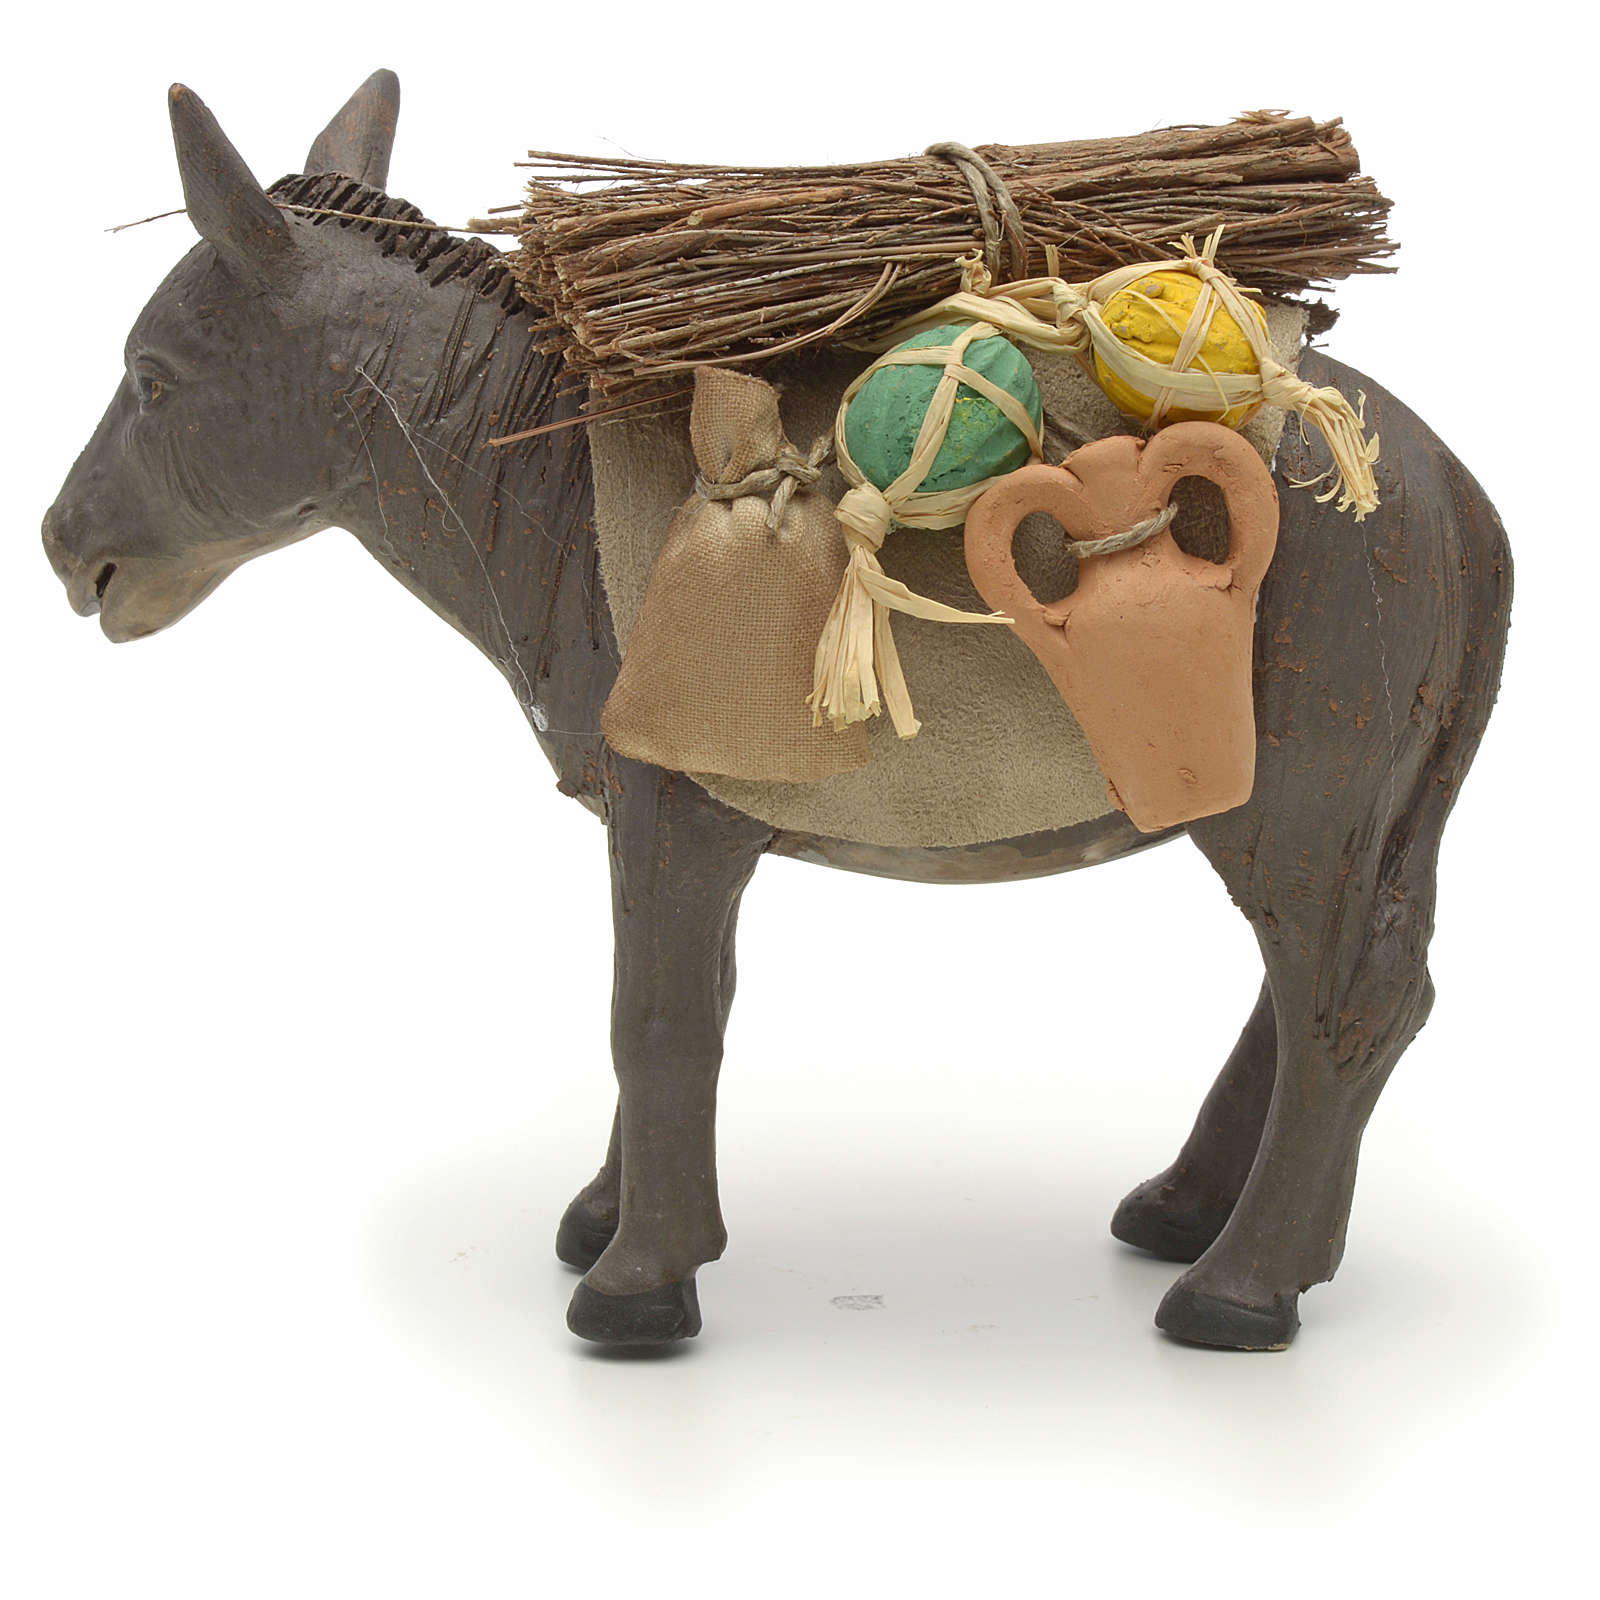 Nativity set accessory Donkey standing and harness 14 cm 4